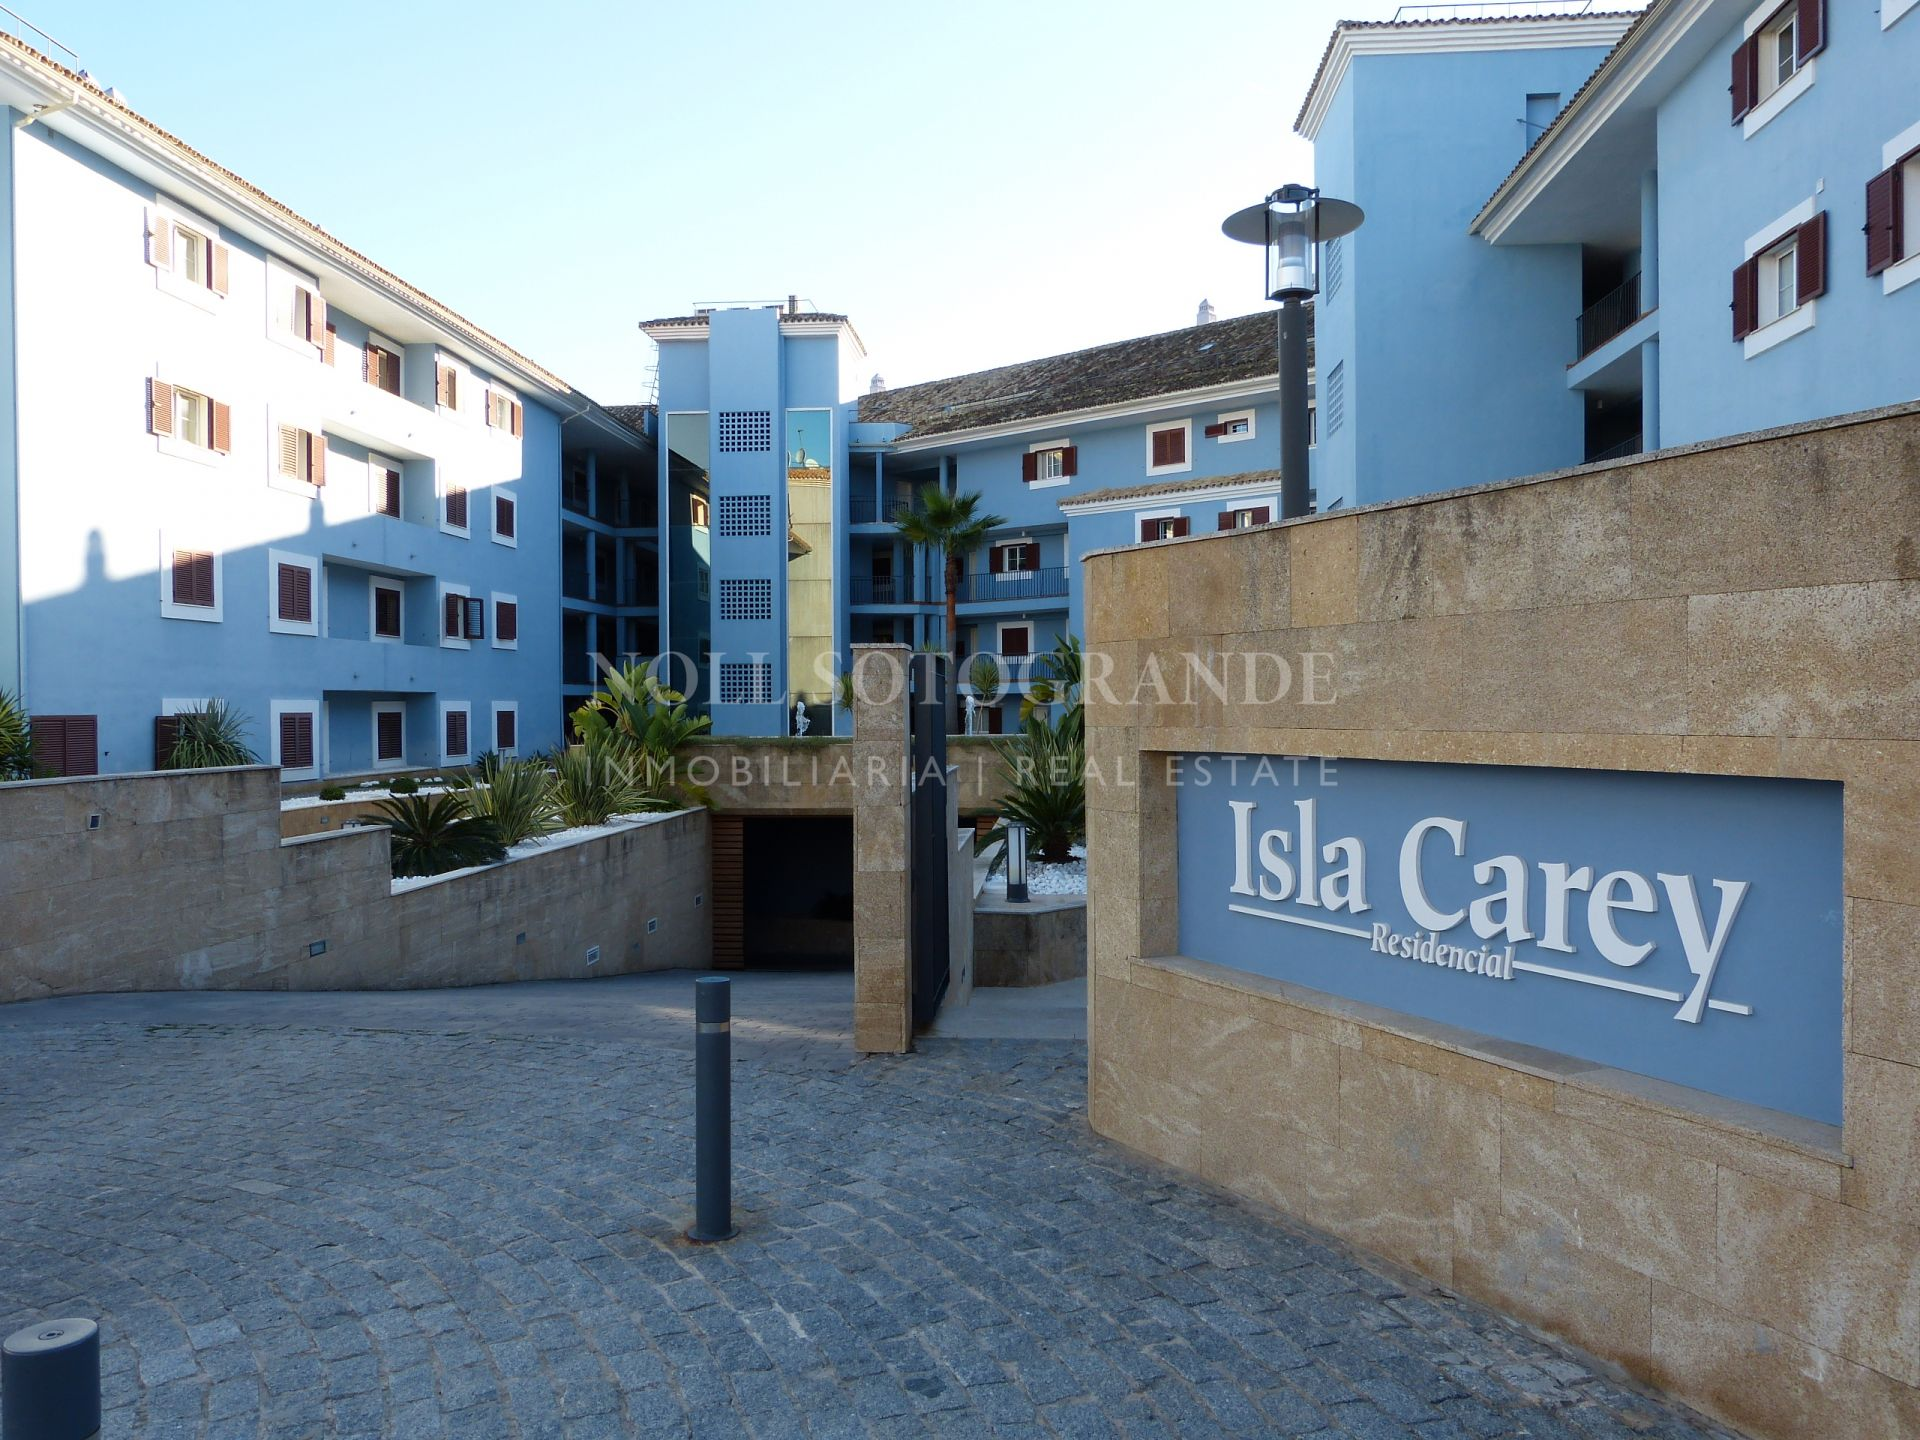 Duplex apartment in Isla Carey Marina Sotogrande for sale